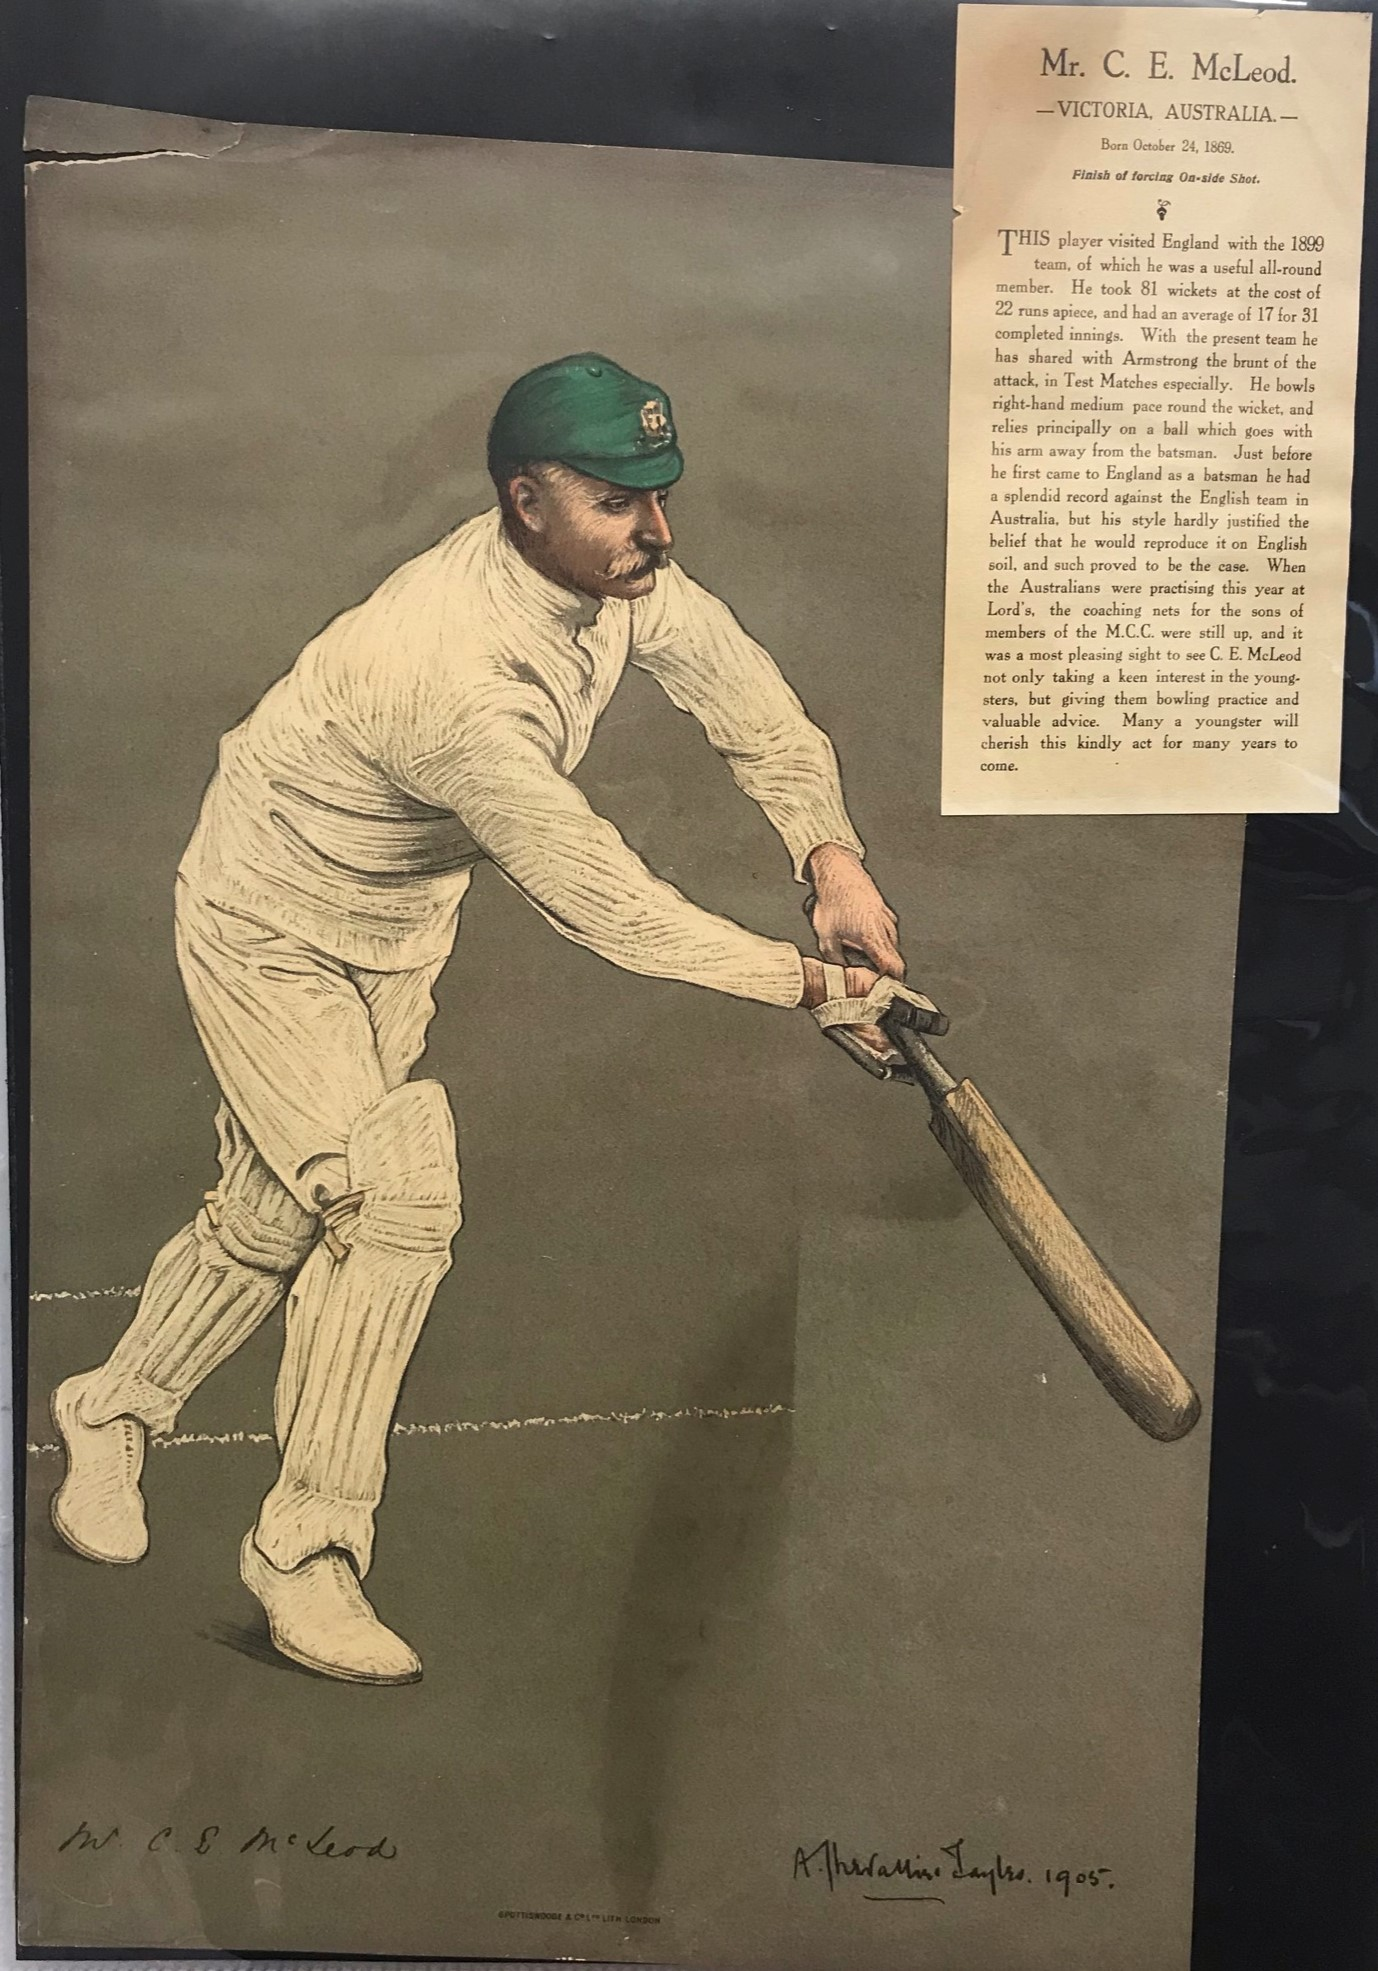 Australia (Victoria) and Tests 1905 colour print of Mr C E McLeod Batting by Chevalier Taylor. Small